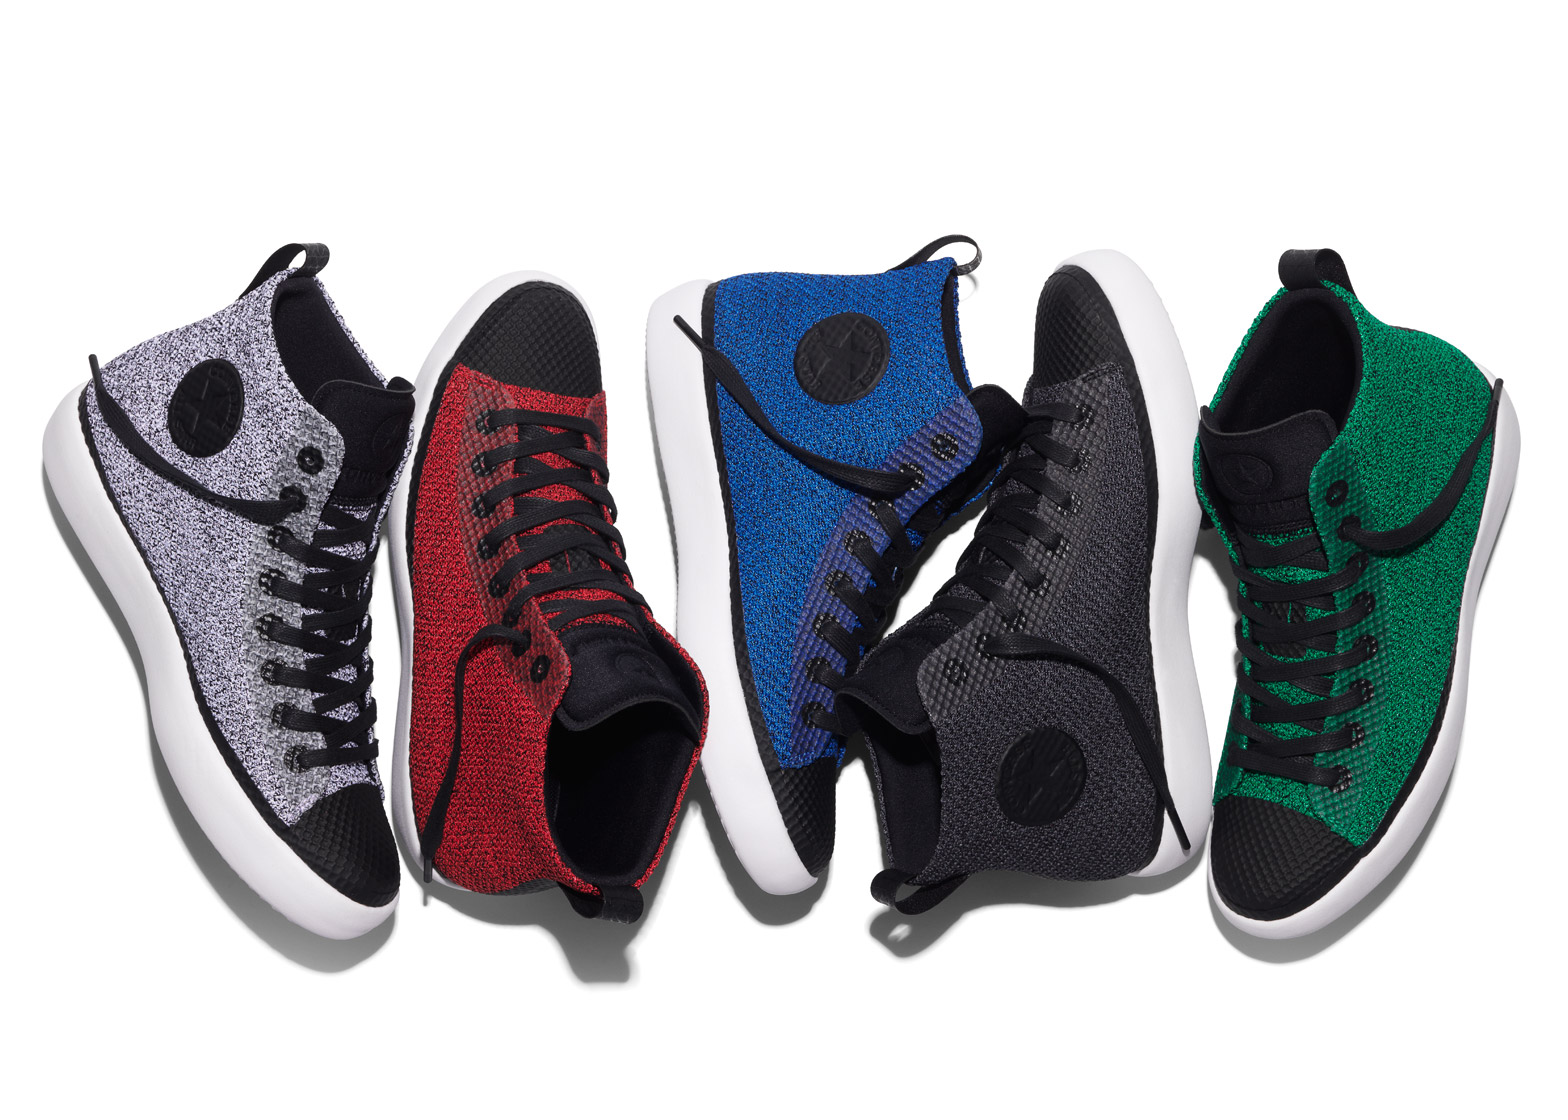 The All Star Modern by Converse